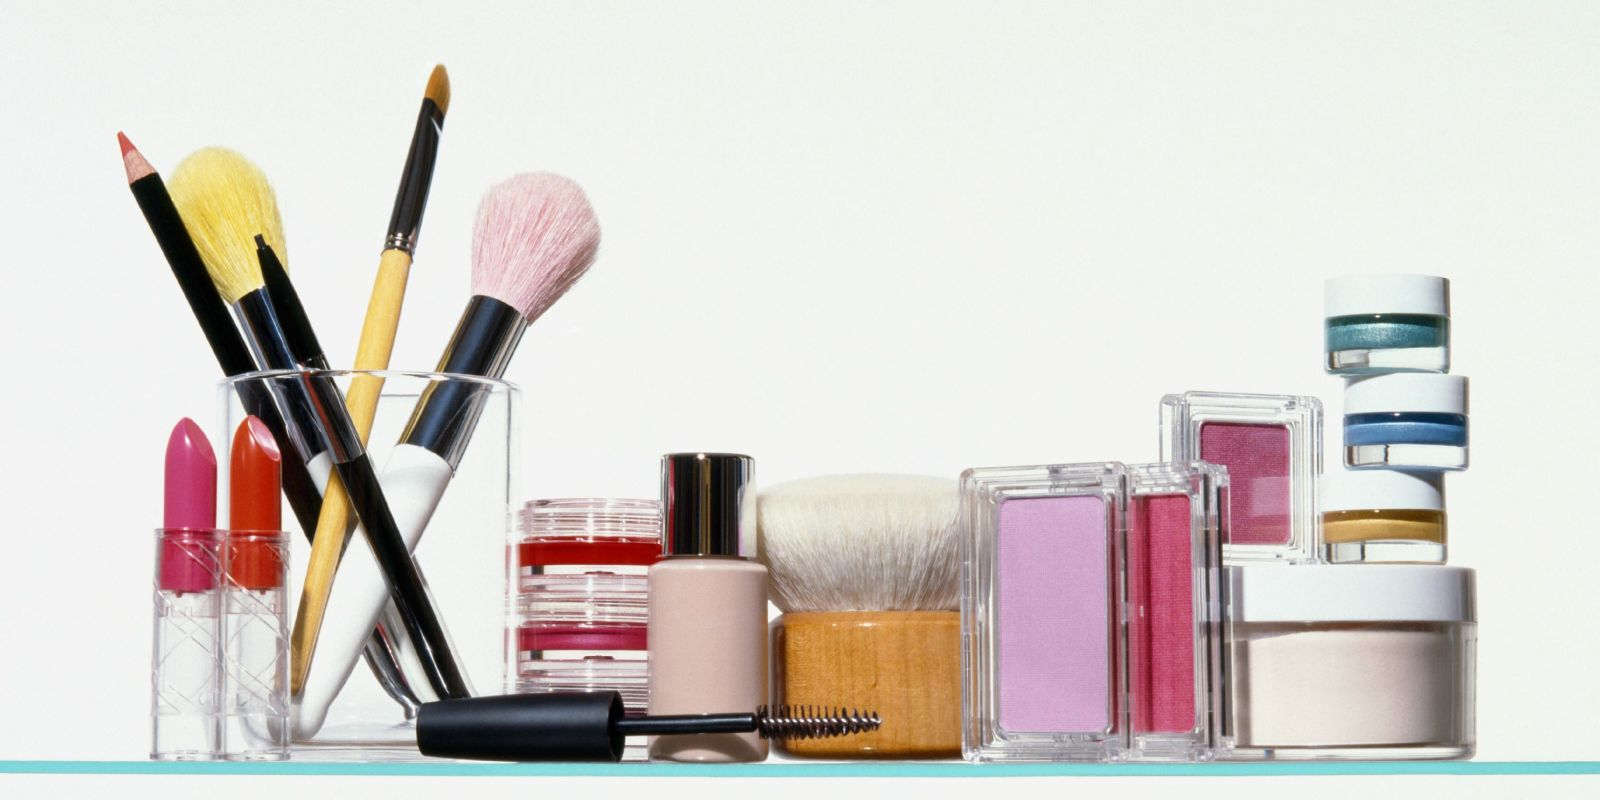 Counterfeit Beauty Products Contain Rat Feces and Arsenic